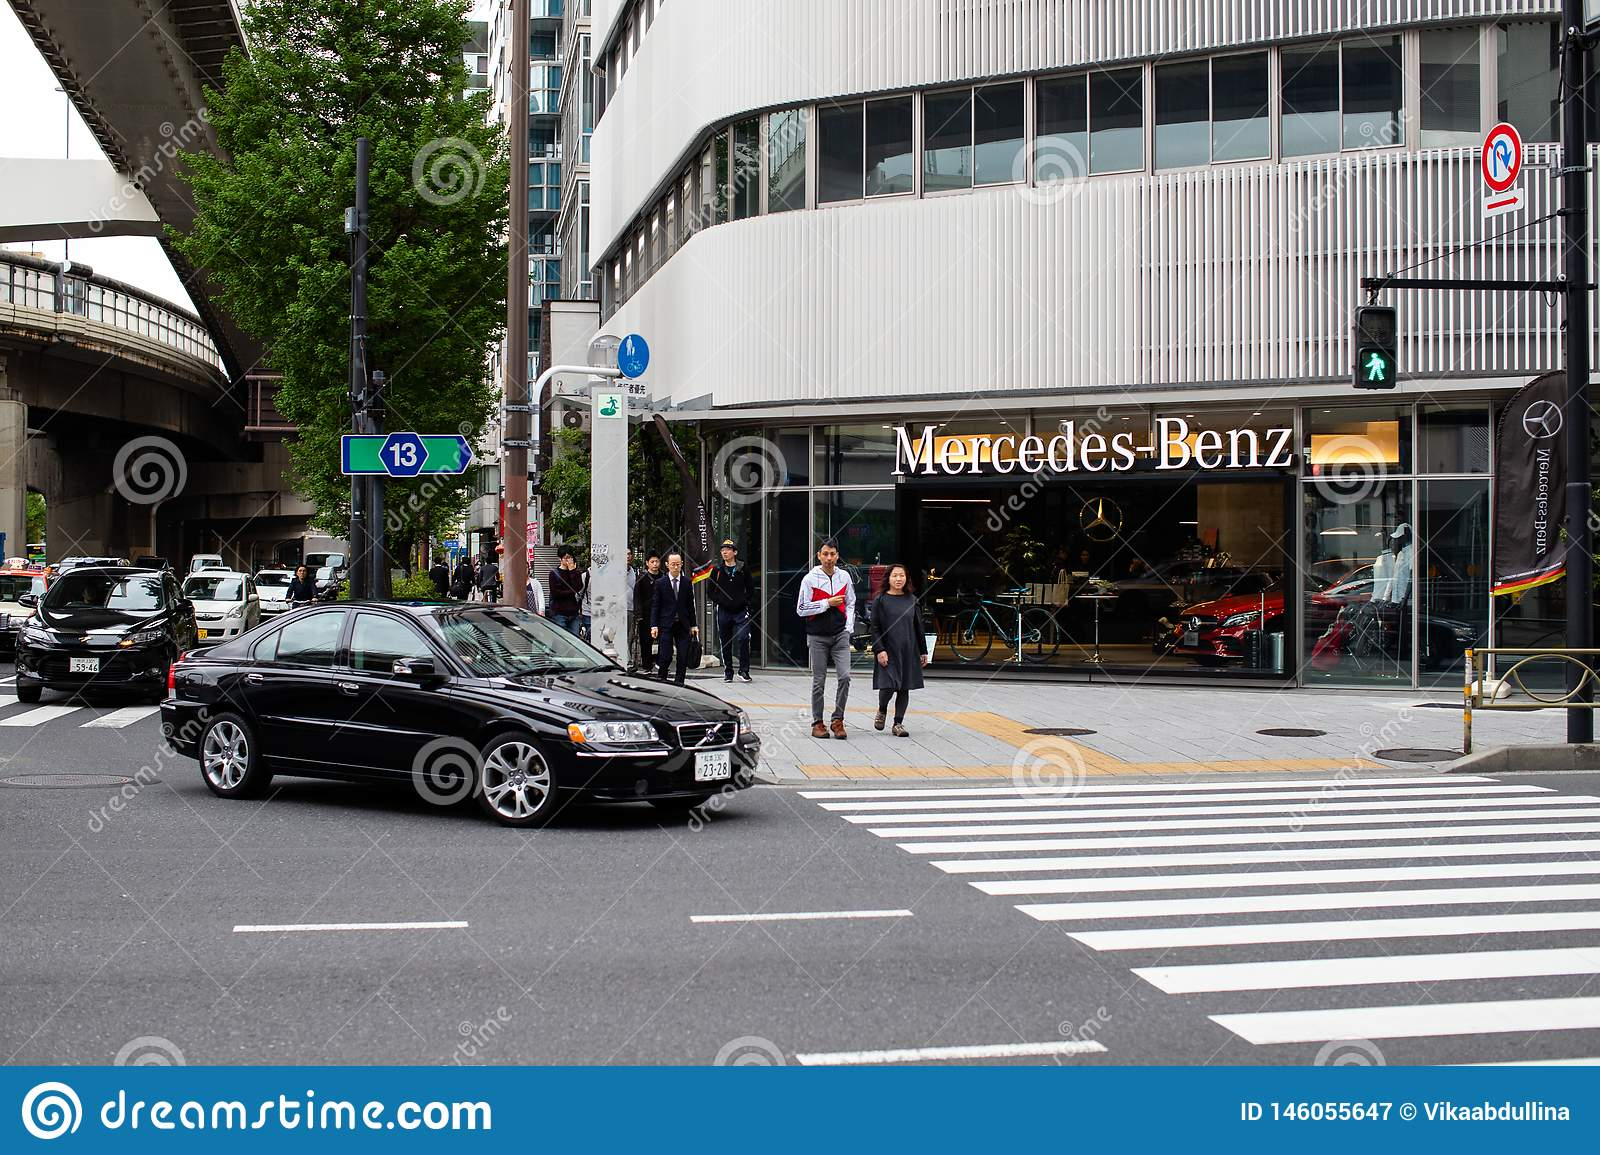 Mercedes benz building - germany car store